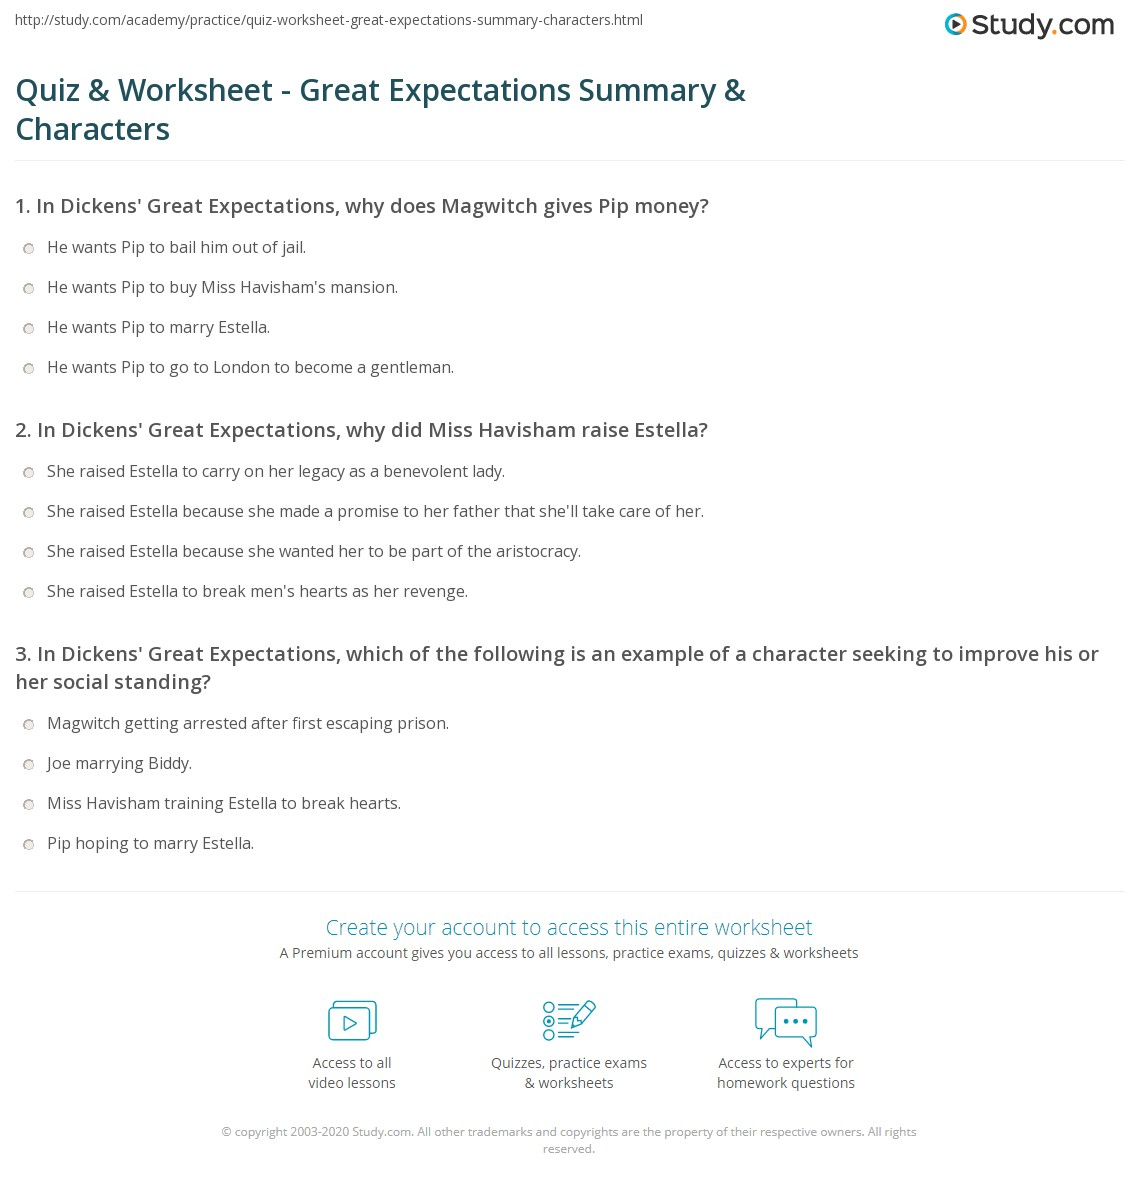 Quiz & Worksheet - Great Expectations Summary & Characters   Study.com